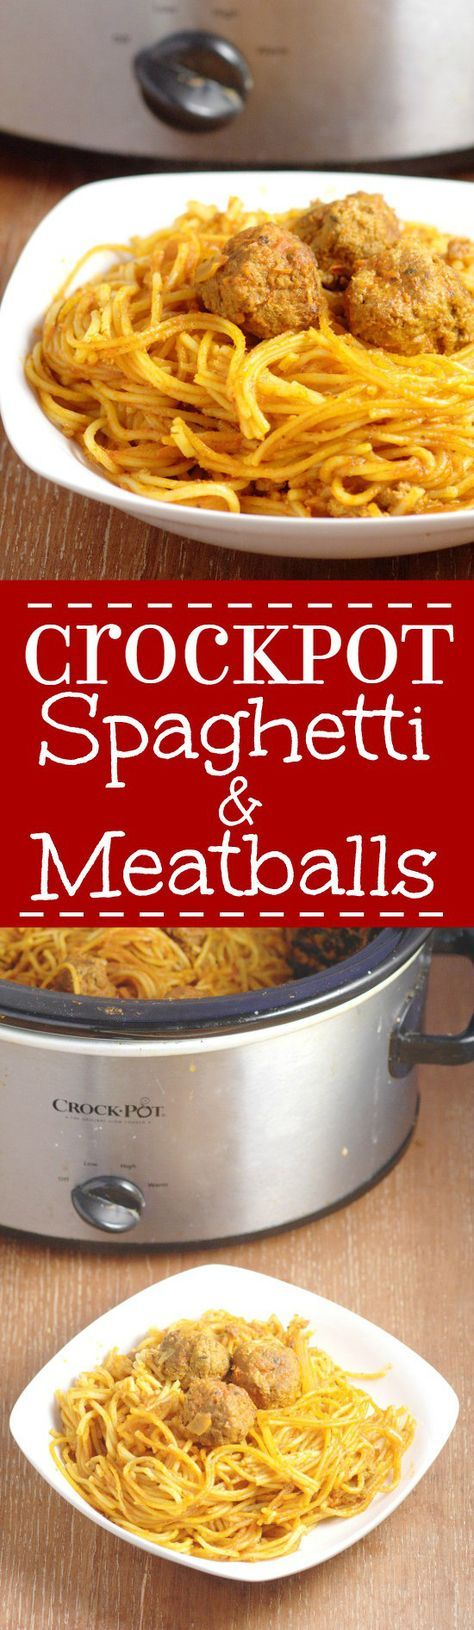 Crockpot Spaghetti and Meatballs recipe with traditional, tender Italian meatballs slow simmered in the slow cooker.  You don't even have to boil the spaghetti! It's a total Spaghetti night game-changer! Great easy family dinner night idea! I think this would be great for a crowd too!